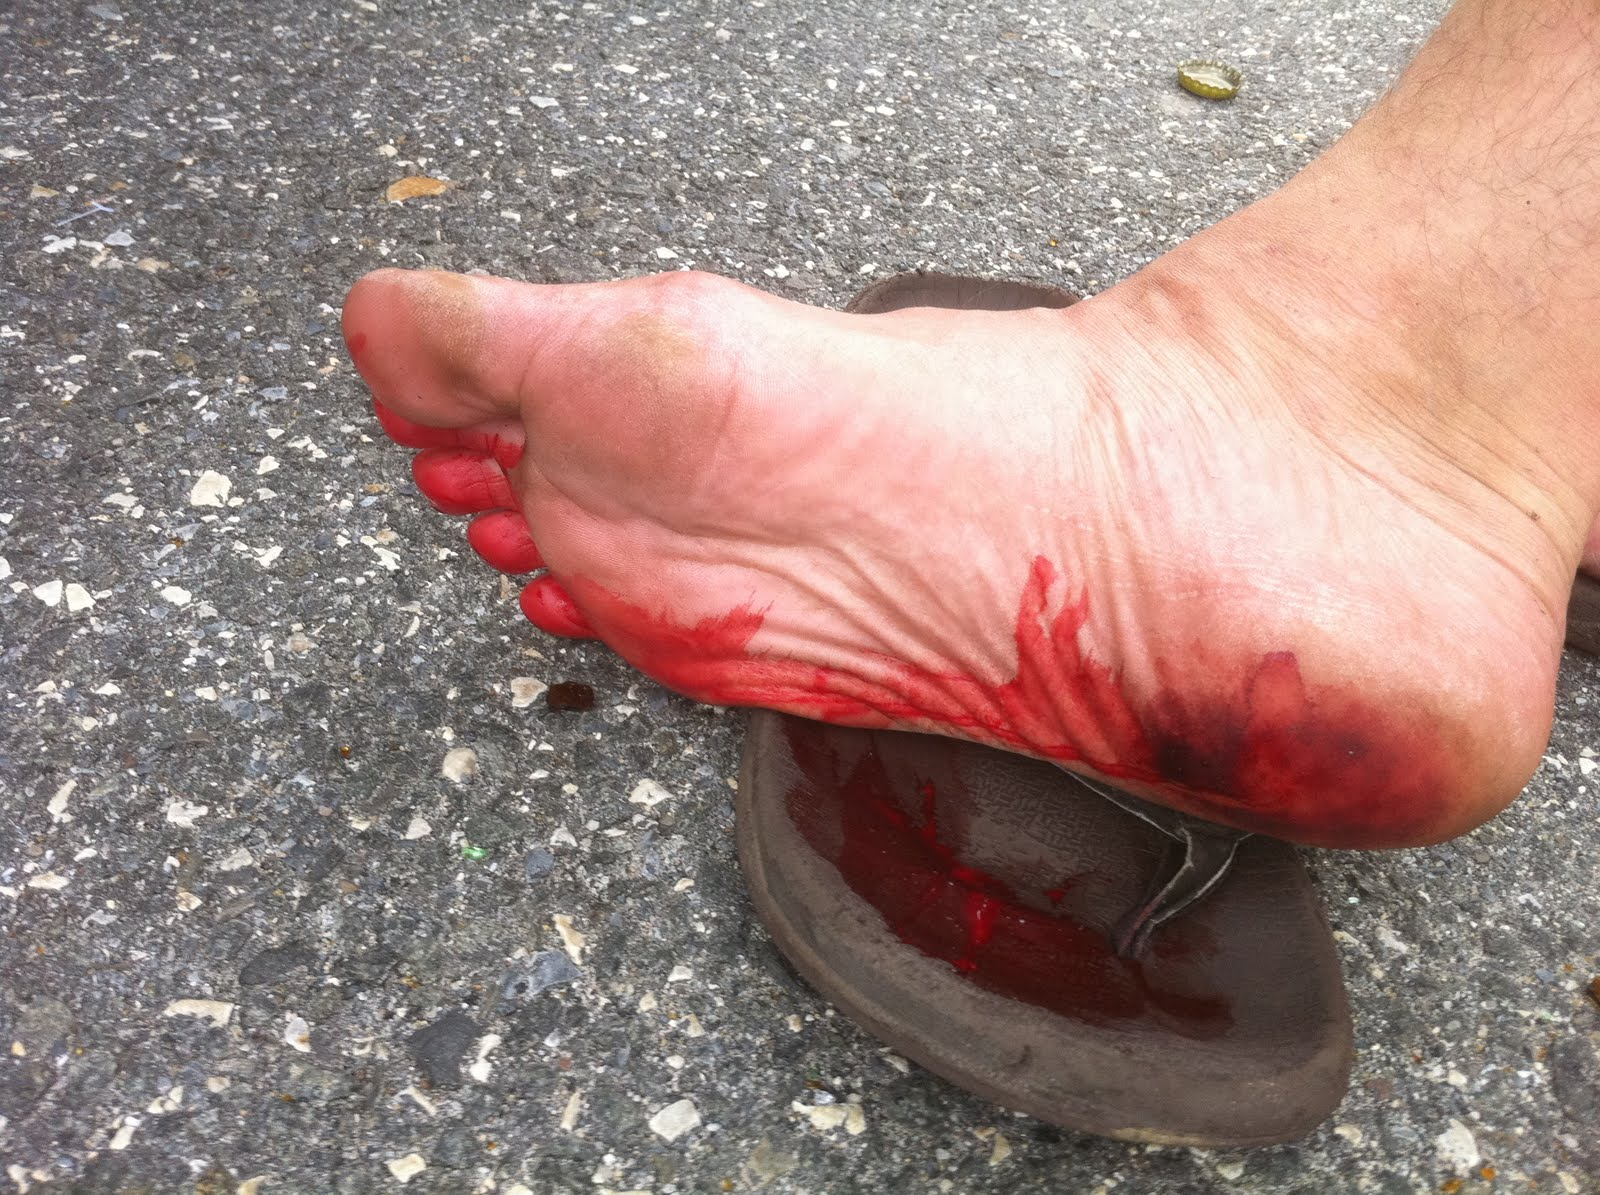 PODIATRIST DISCUSSES REMOVING GLASS FROM YOUR FOOT - PODIATRIST